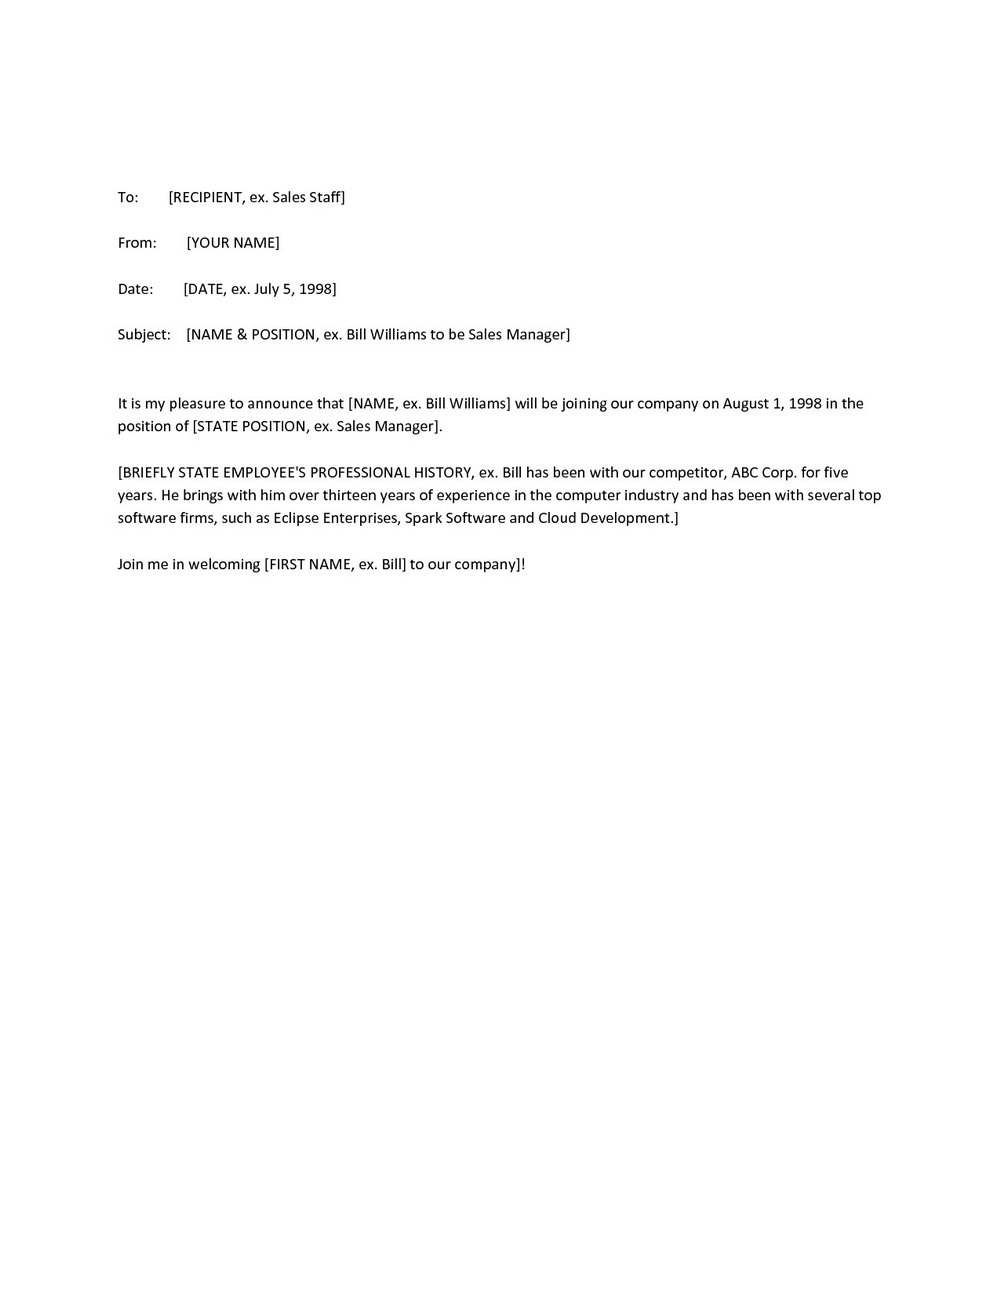 Employee Termination Announcement Template